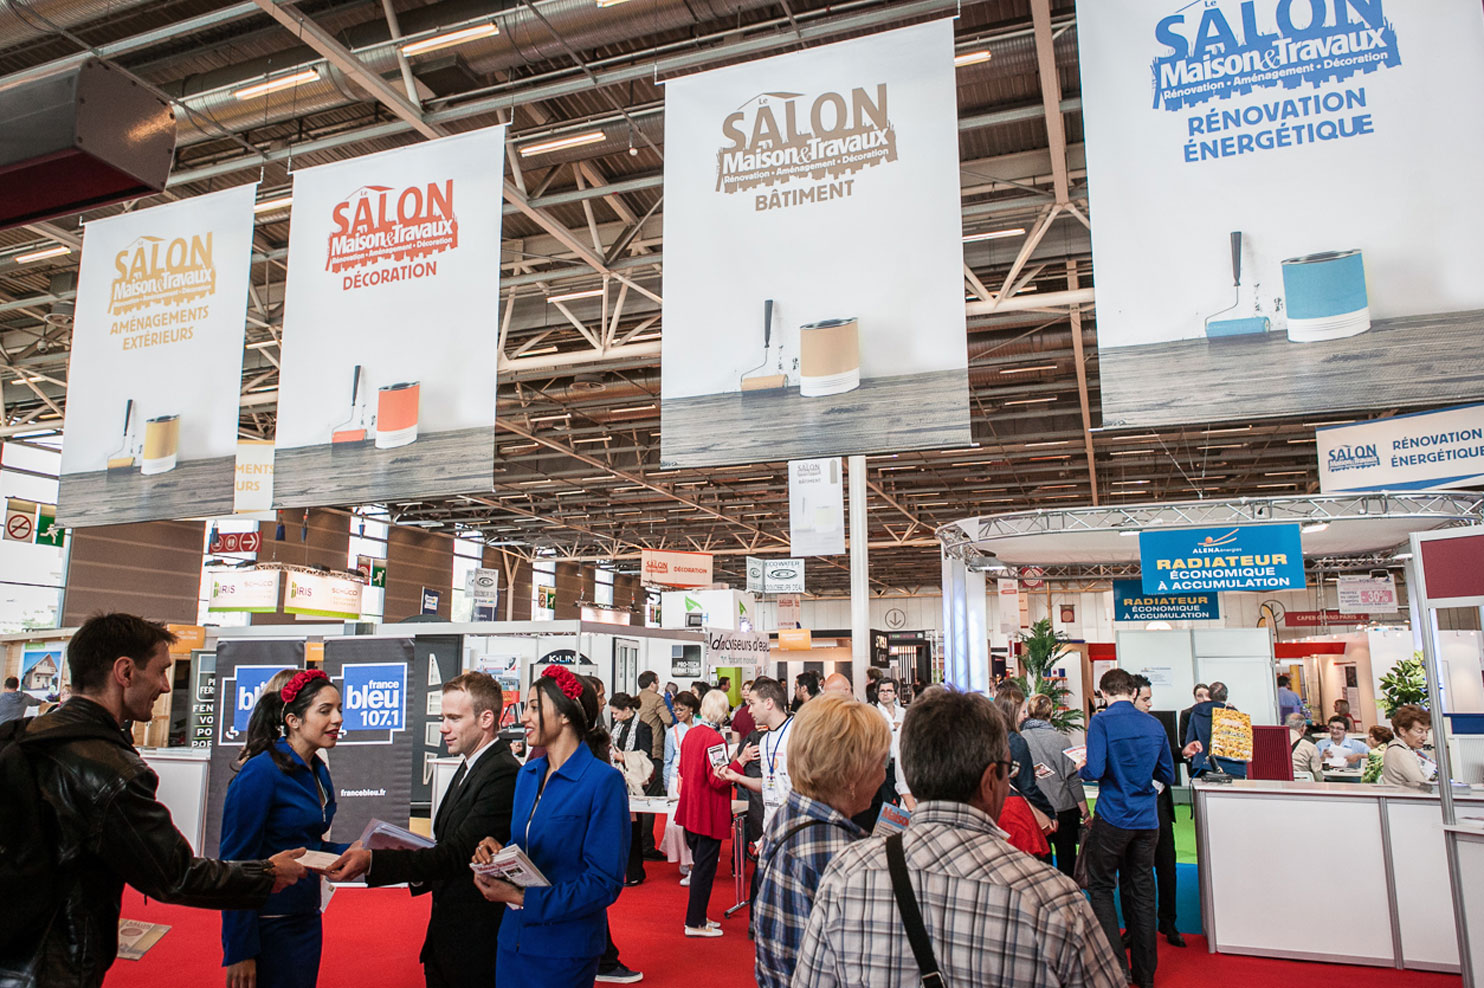 SALON MAISON & TRAVAUX 2014